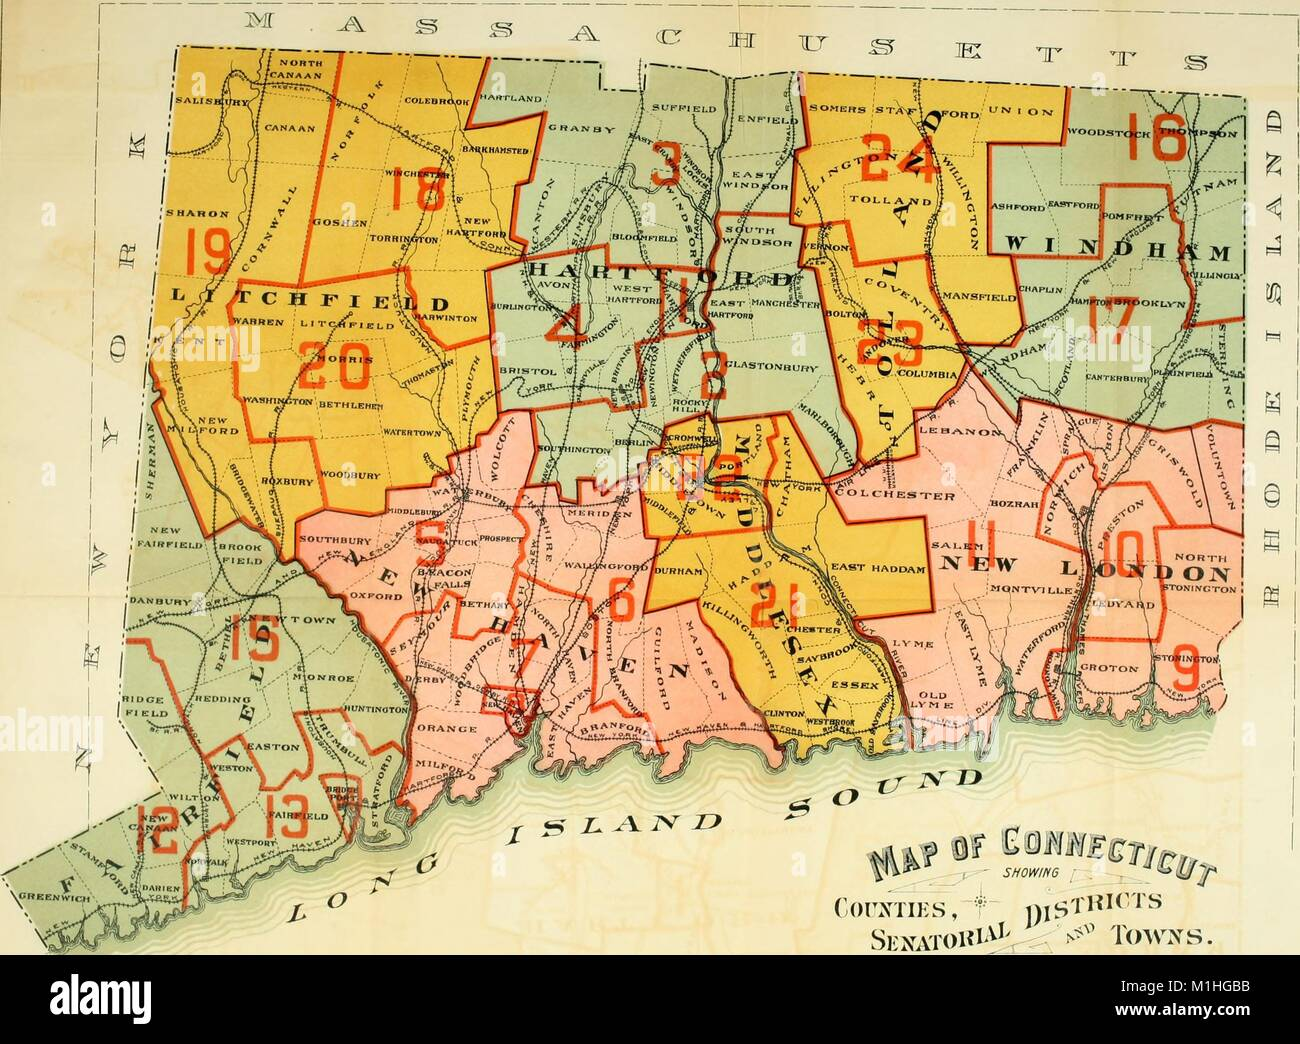 Political map of the US state of Connecticut, with color ... on geographical map of the us, geological map of the us, electoral map of the us, religious map of the us, social map of the us, commodities map of the us, demographic map of the us, diplomatic map of the us, national map of the us, military map of the us, logistical map of the us, political map of the us, economic map of the us, racial map of the us, cultural map of the us, environmental map of the us, language map of the us, ecological map of the us, environment map of the us, geologic map of the us,